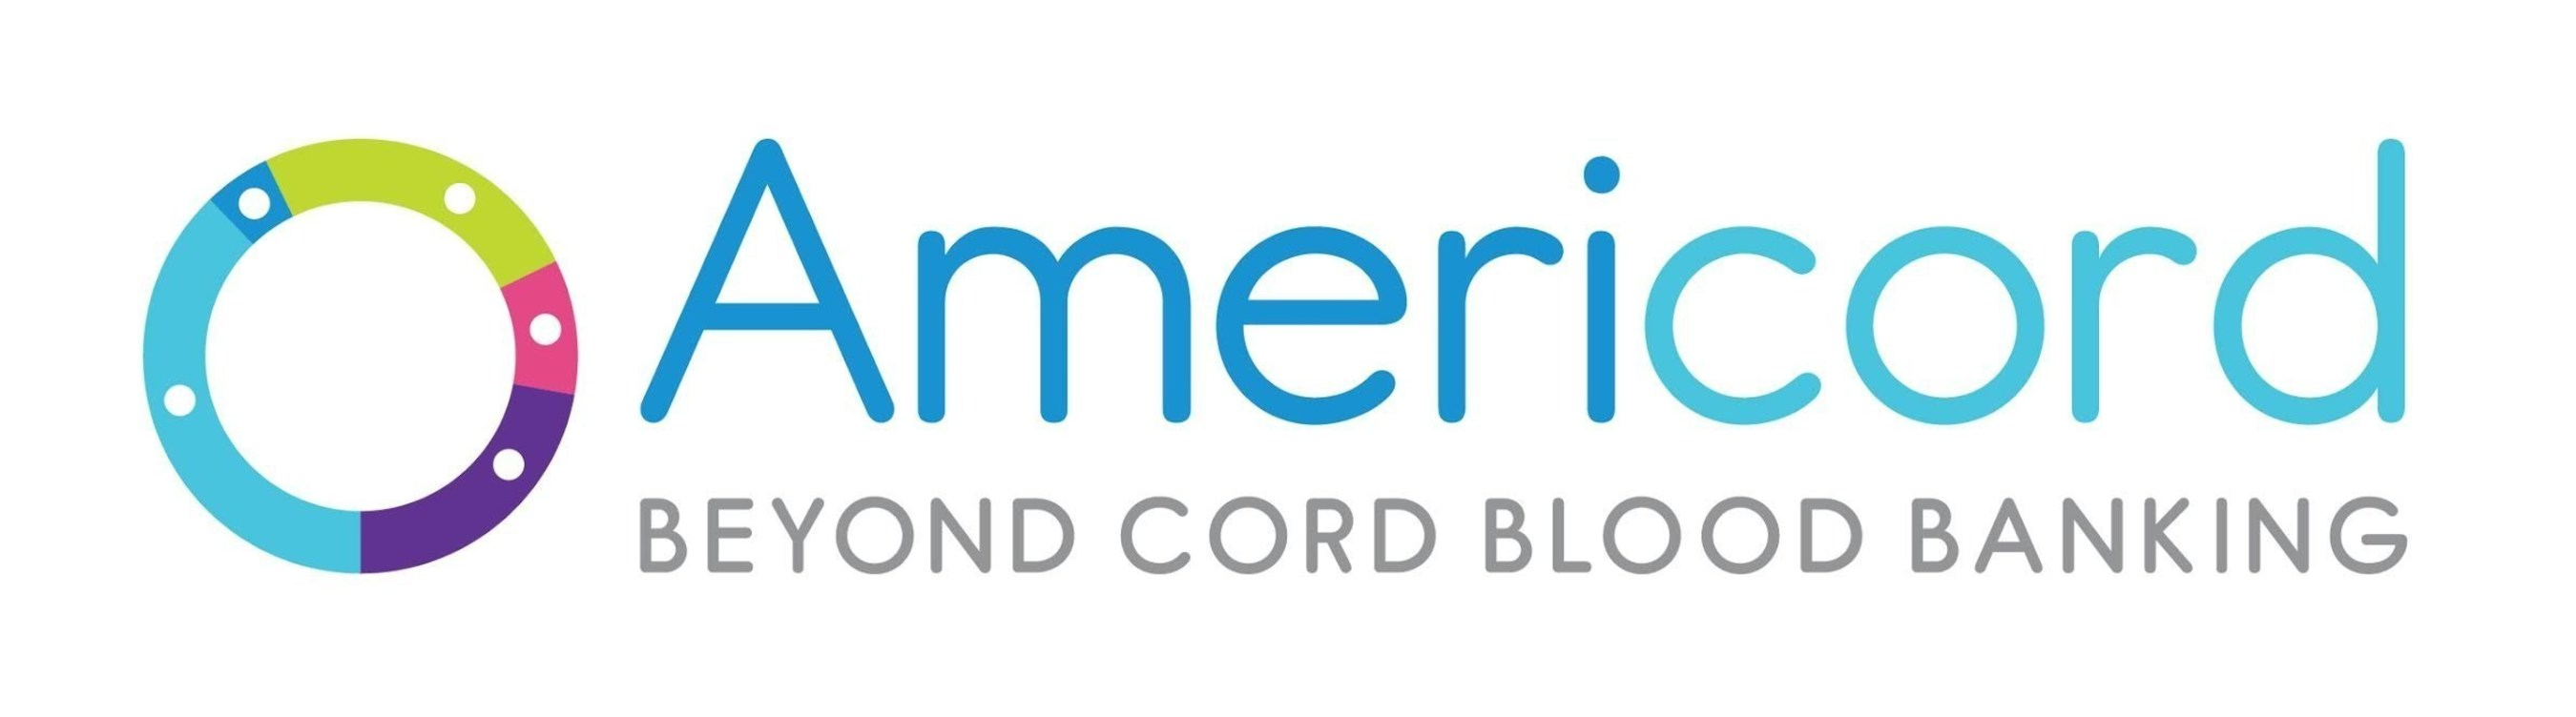 Cord Blood Bank Revolutionizes Process of Online Cord Blood Banking